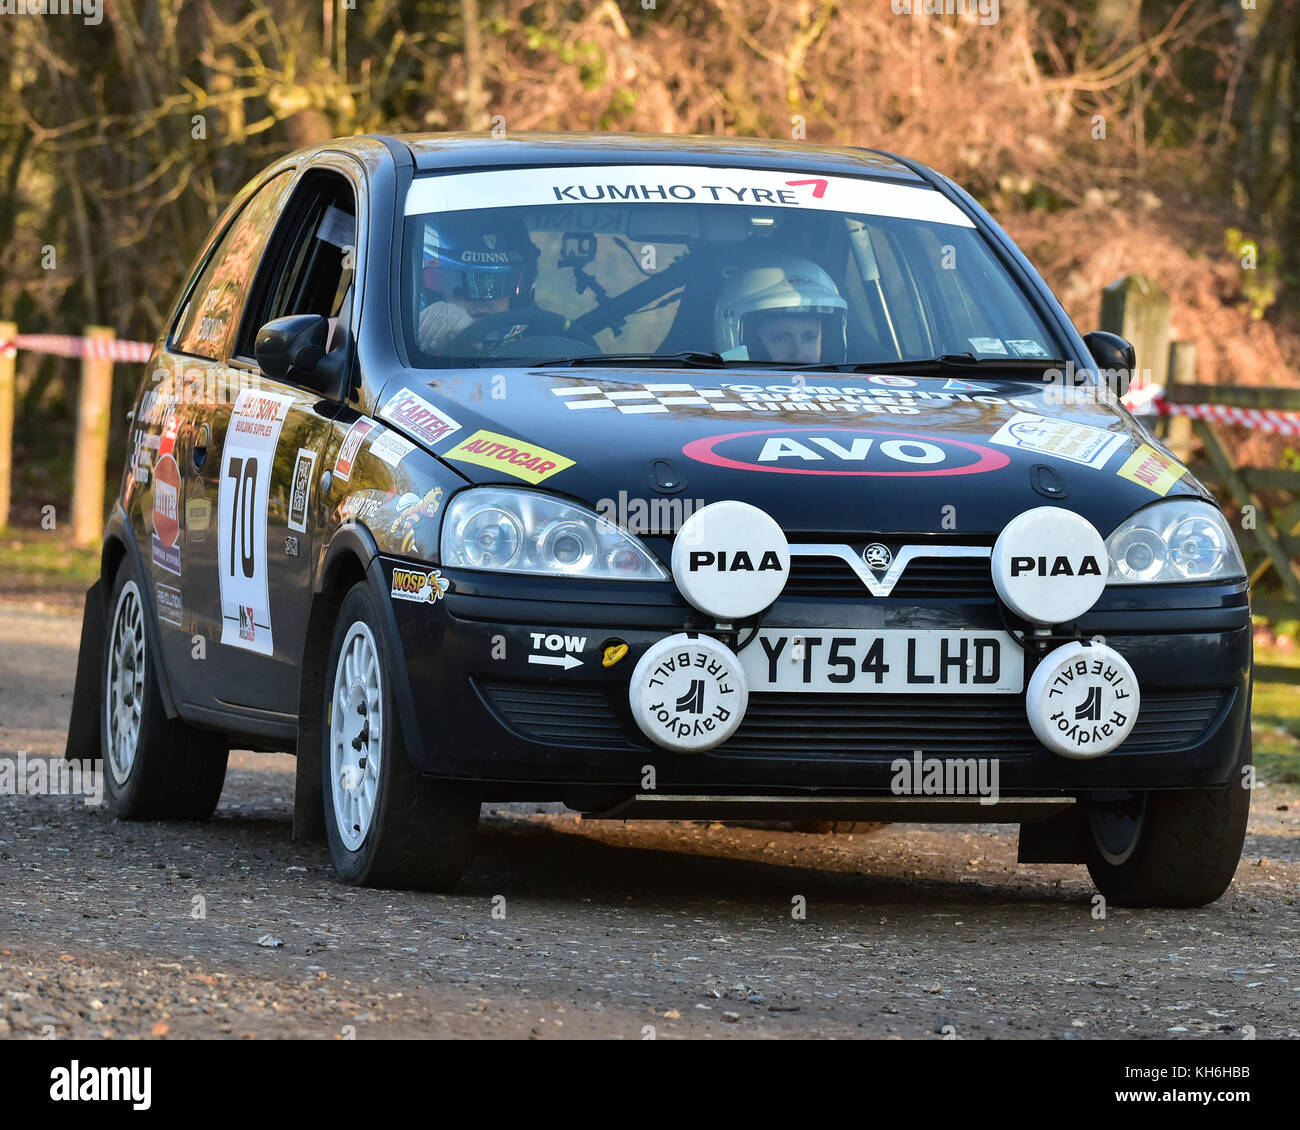 Cute Corsa Rally Car For Sale Pictures Inspiration - Classic Cars ...